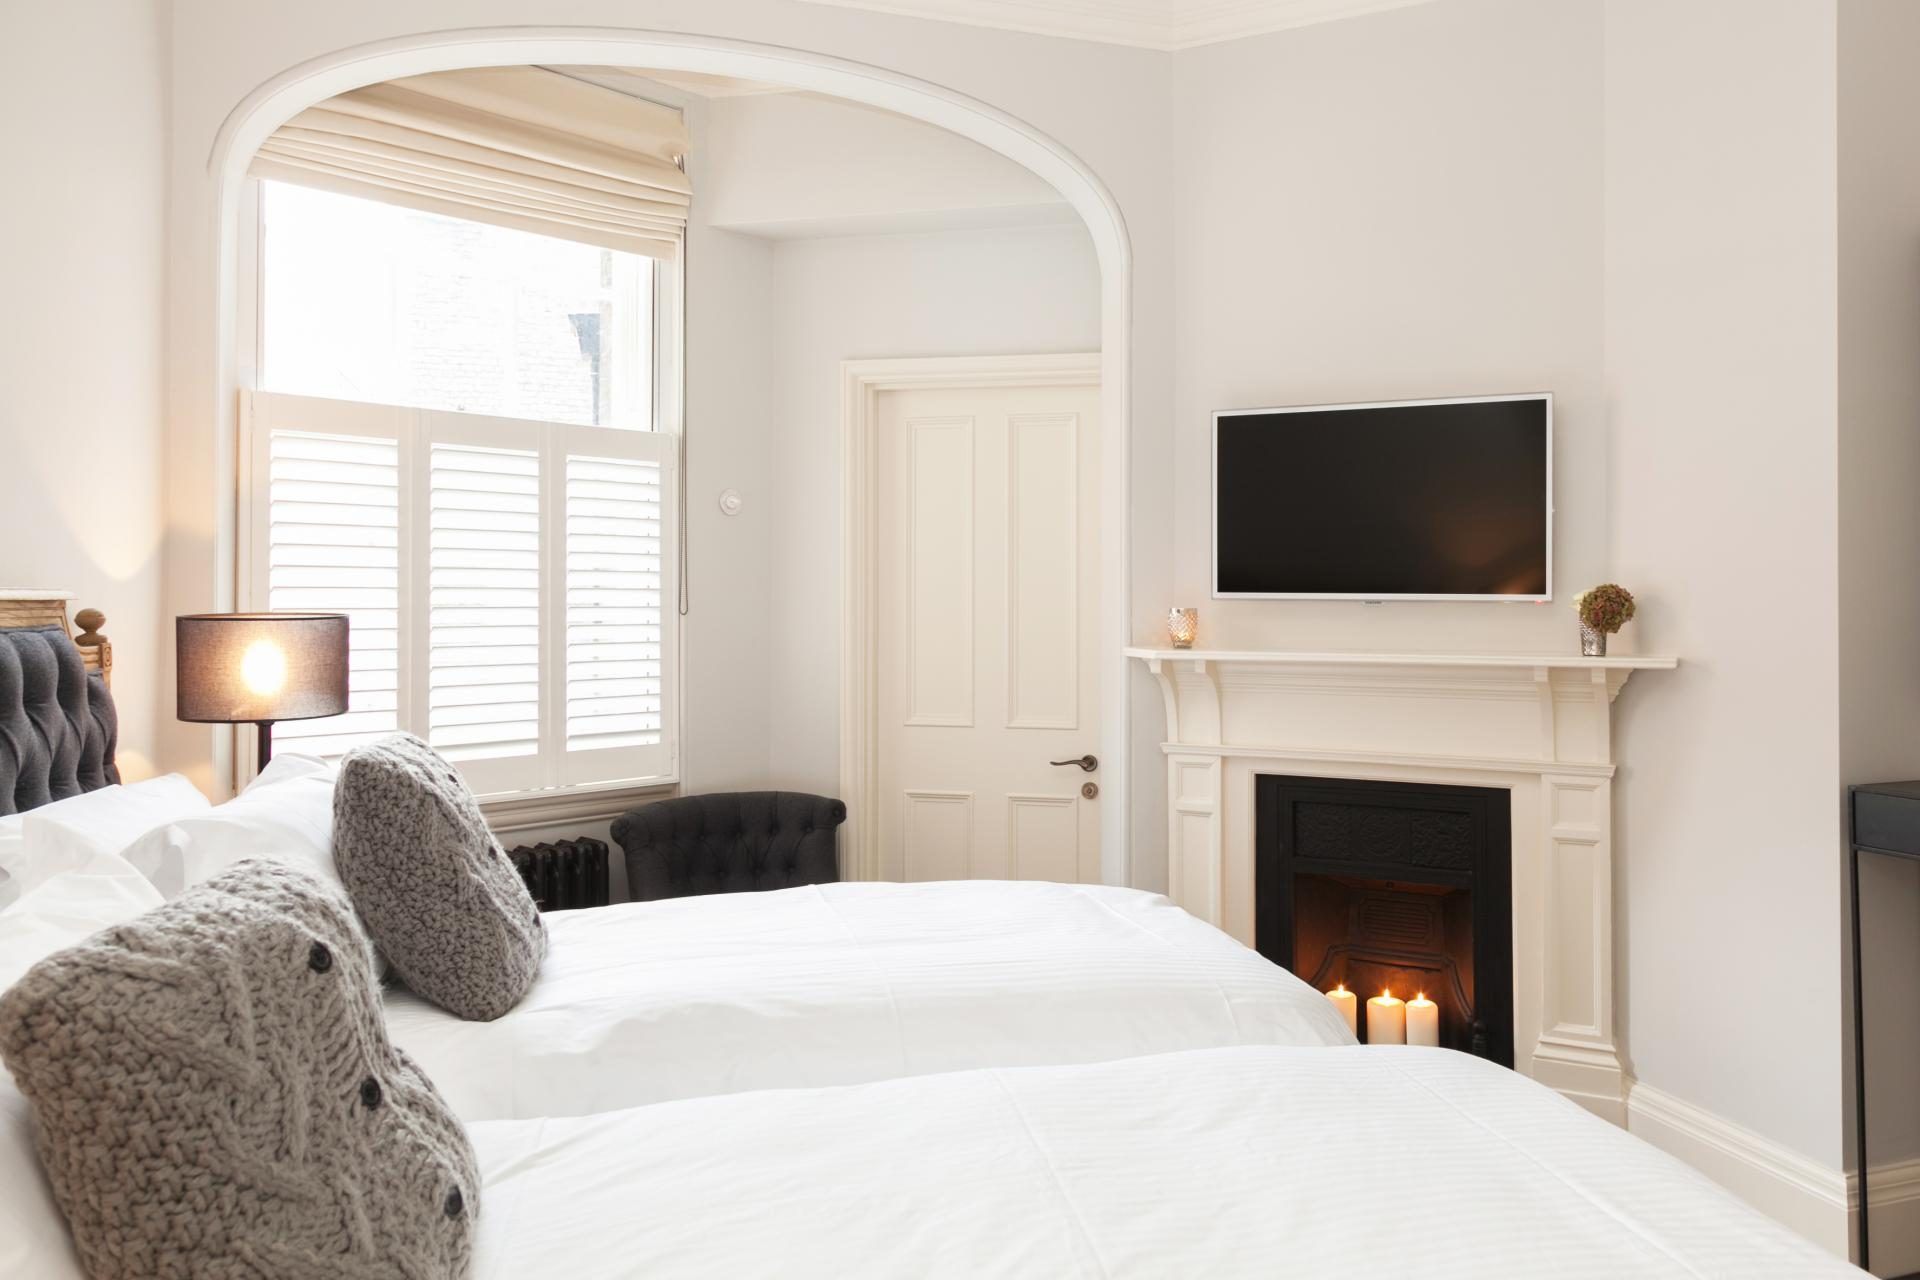 Fireplace in bedroom at Luxurious Mayfair Apartments, Mayfair, London